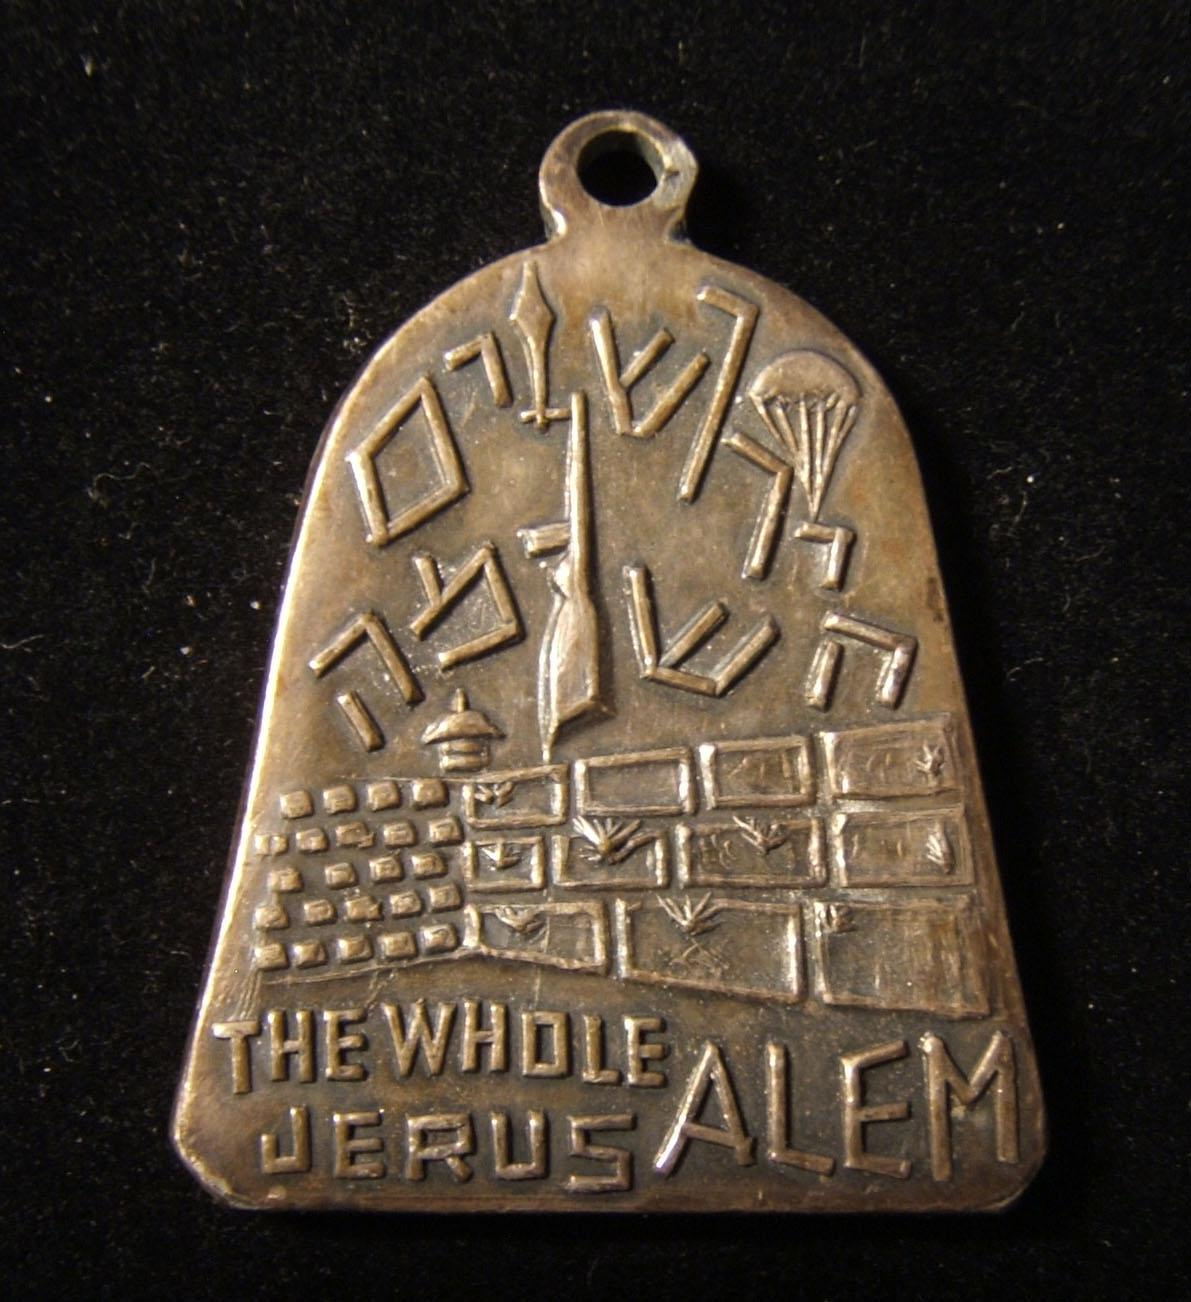 Israel: bell-shaped Six-Day War commemoration tallion highlighting Jerusalem as complete, with legend in English & Hebrew, with images of the Western Wall, paratroopers and a gun;